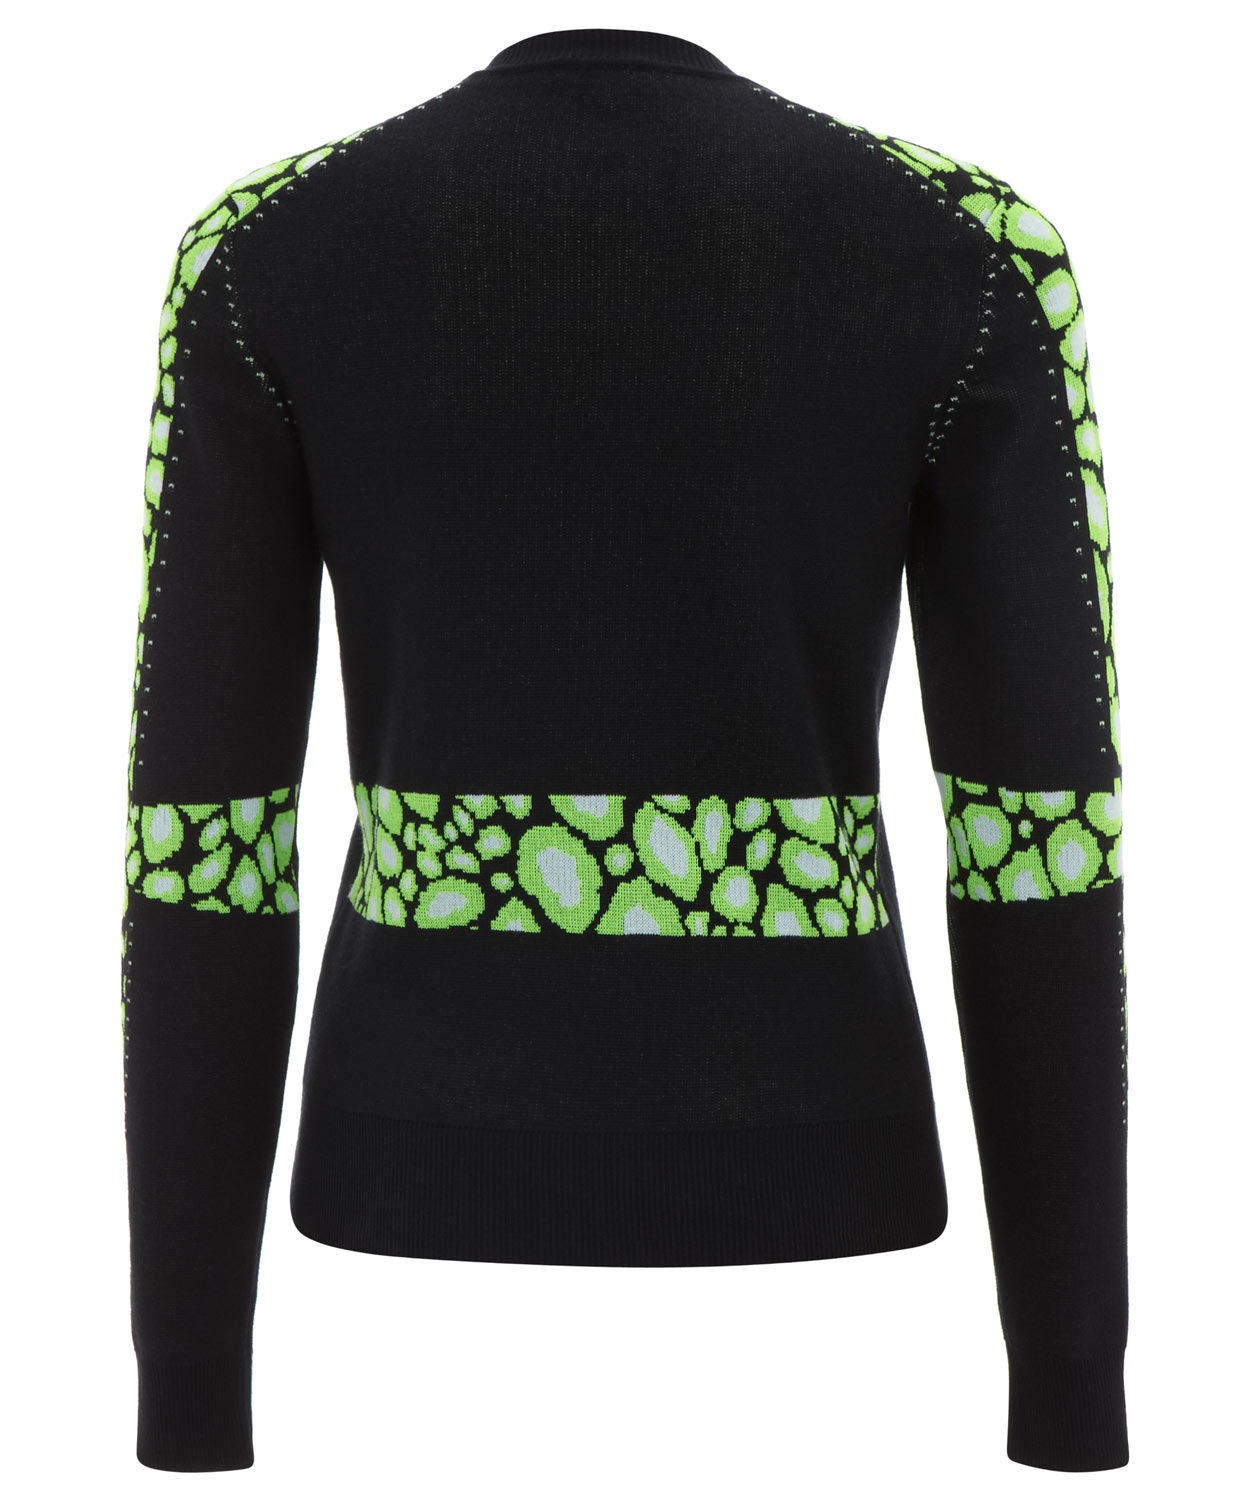 Kenzo Midnight and Green Leopard Intarsia Knitted Jumper in Black ...